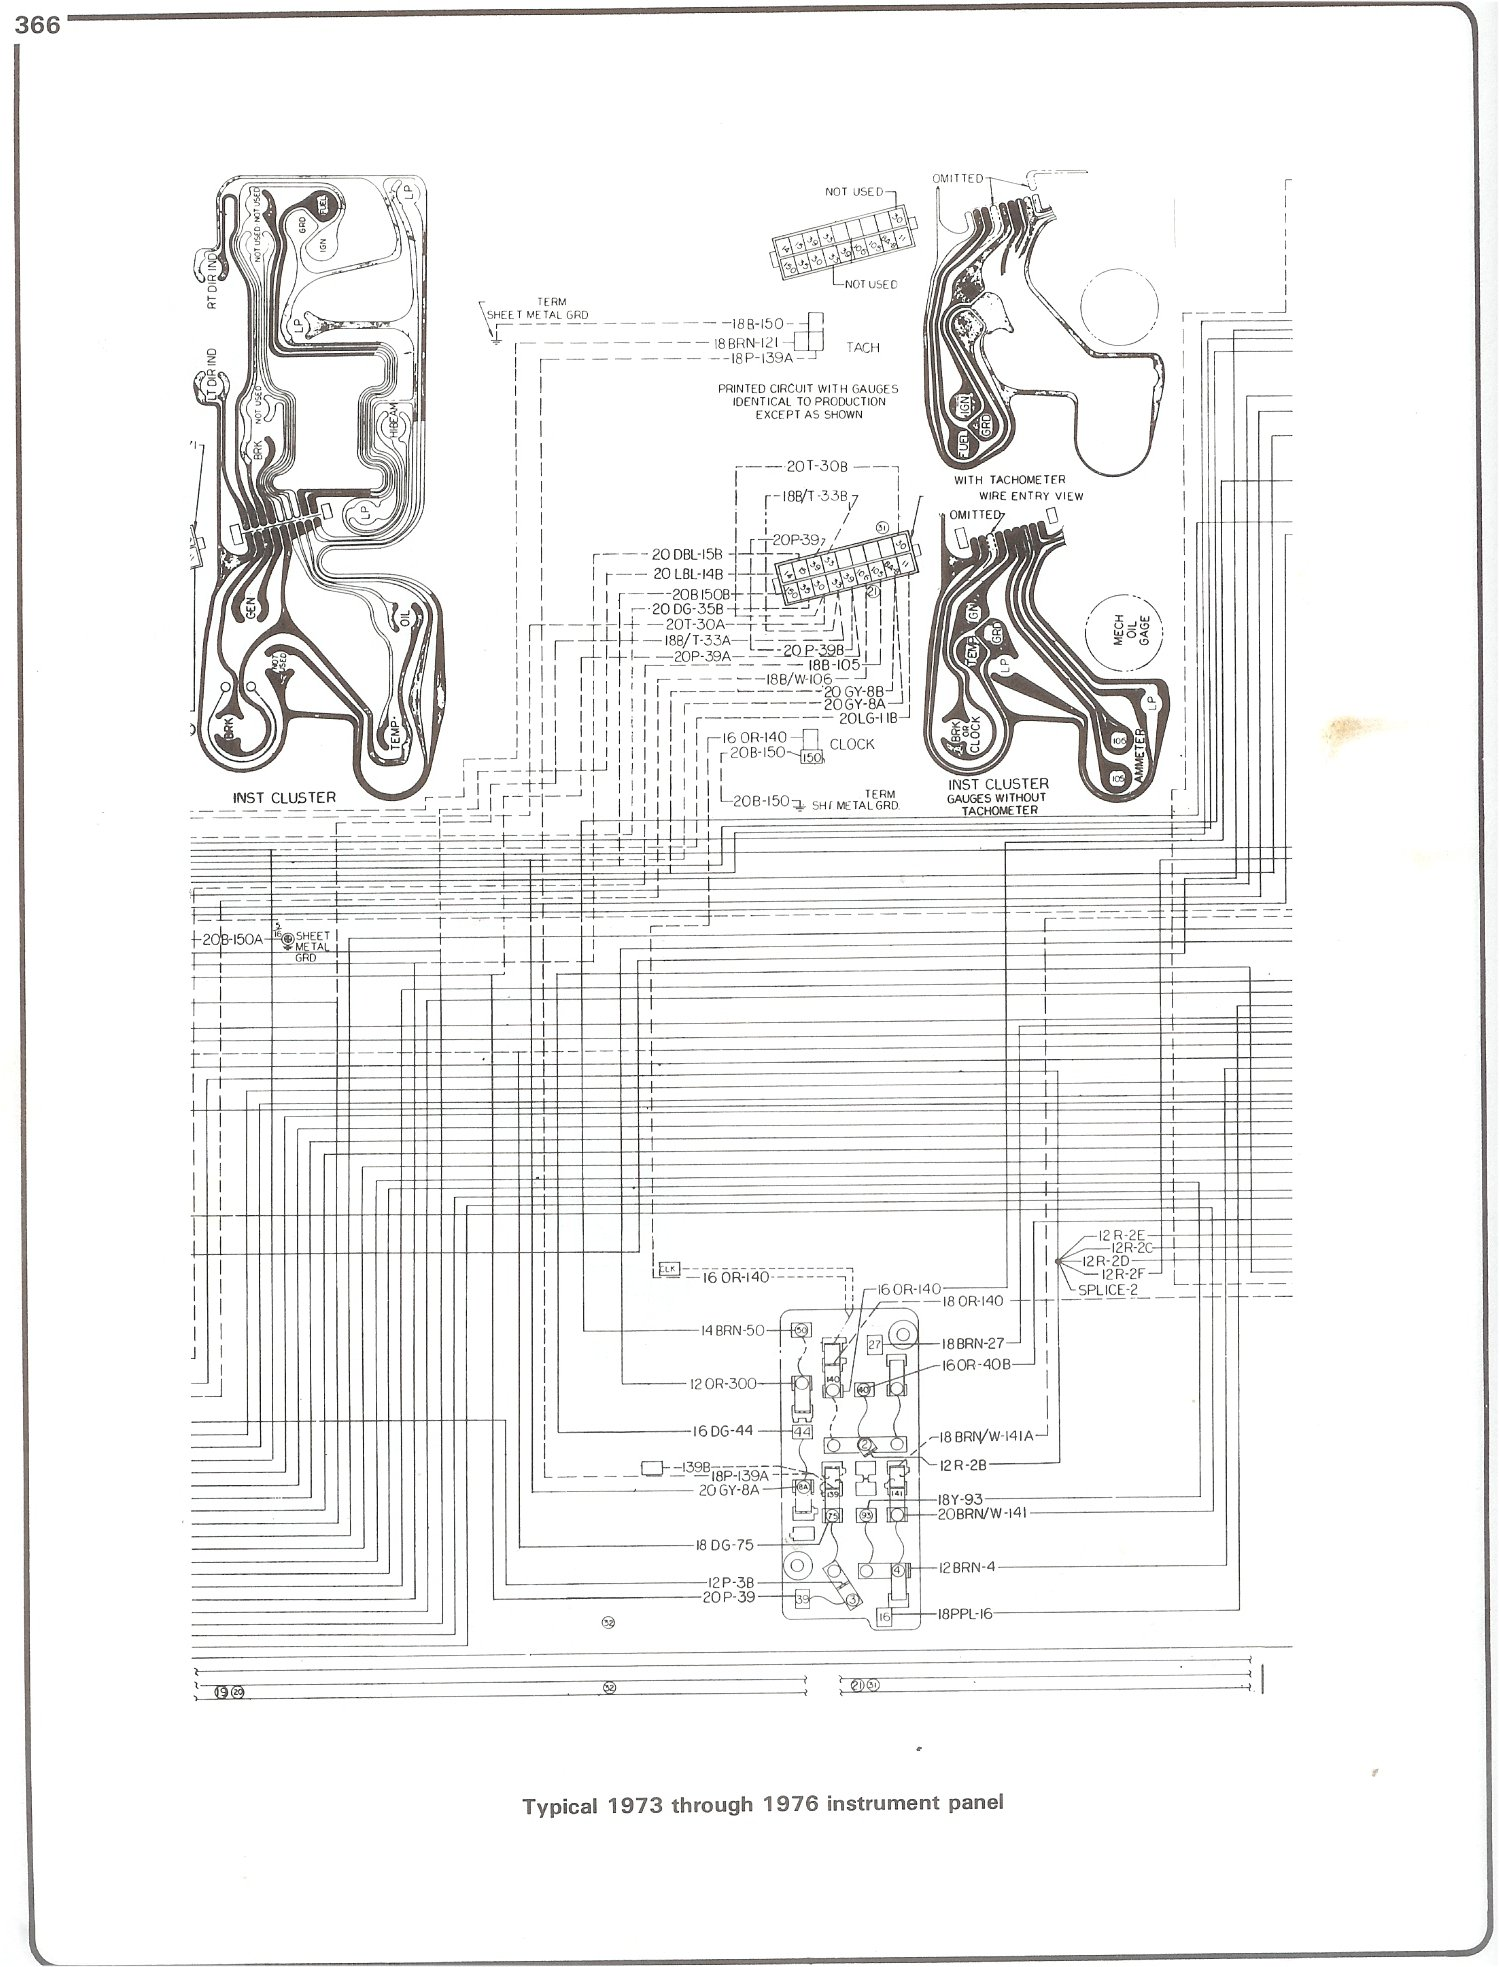 73 76_instrument complete 73 87 wiring diagrams 1986 chevy truck wiring diagram at alyssarenee.co